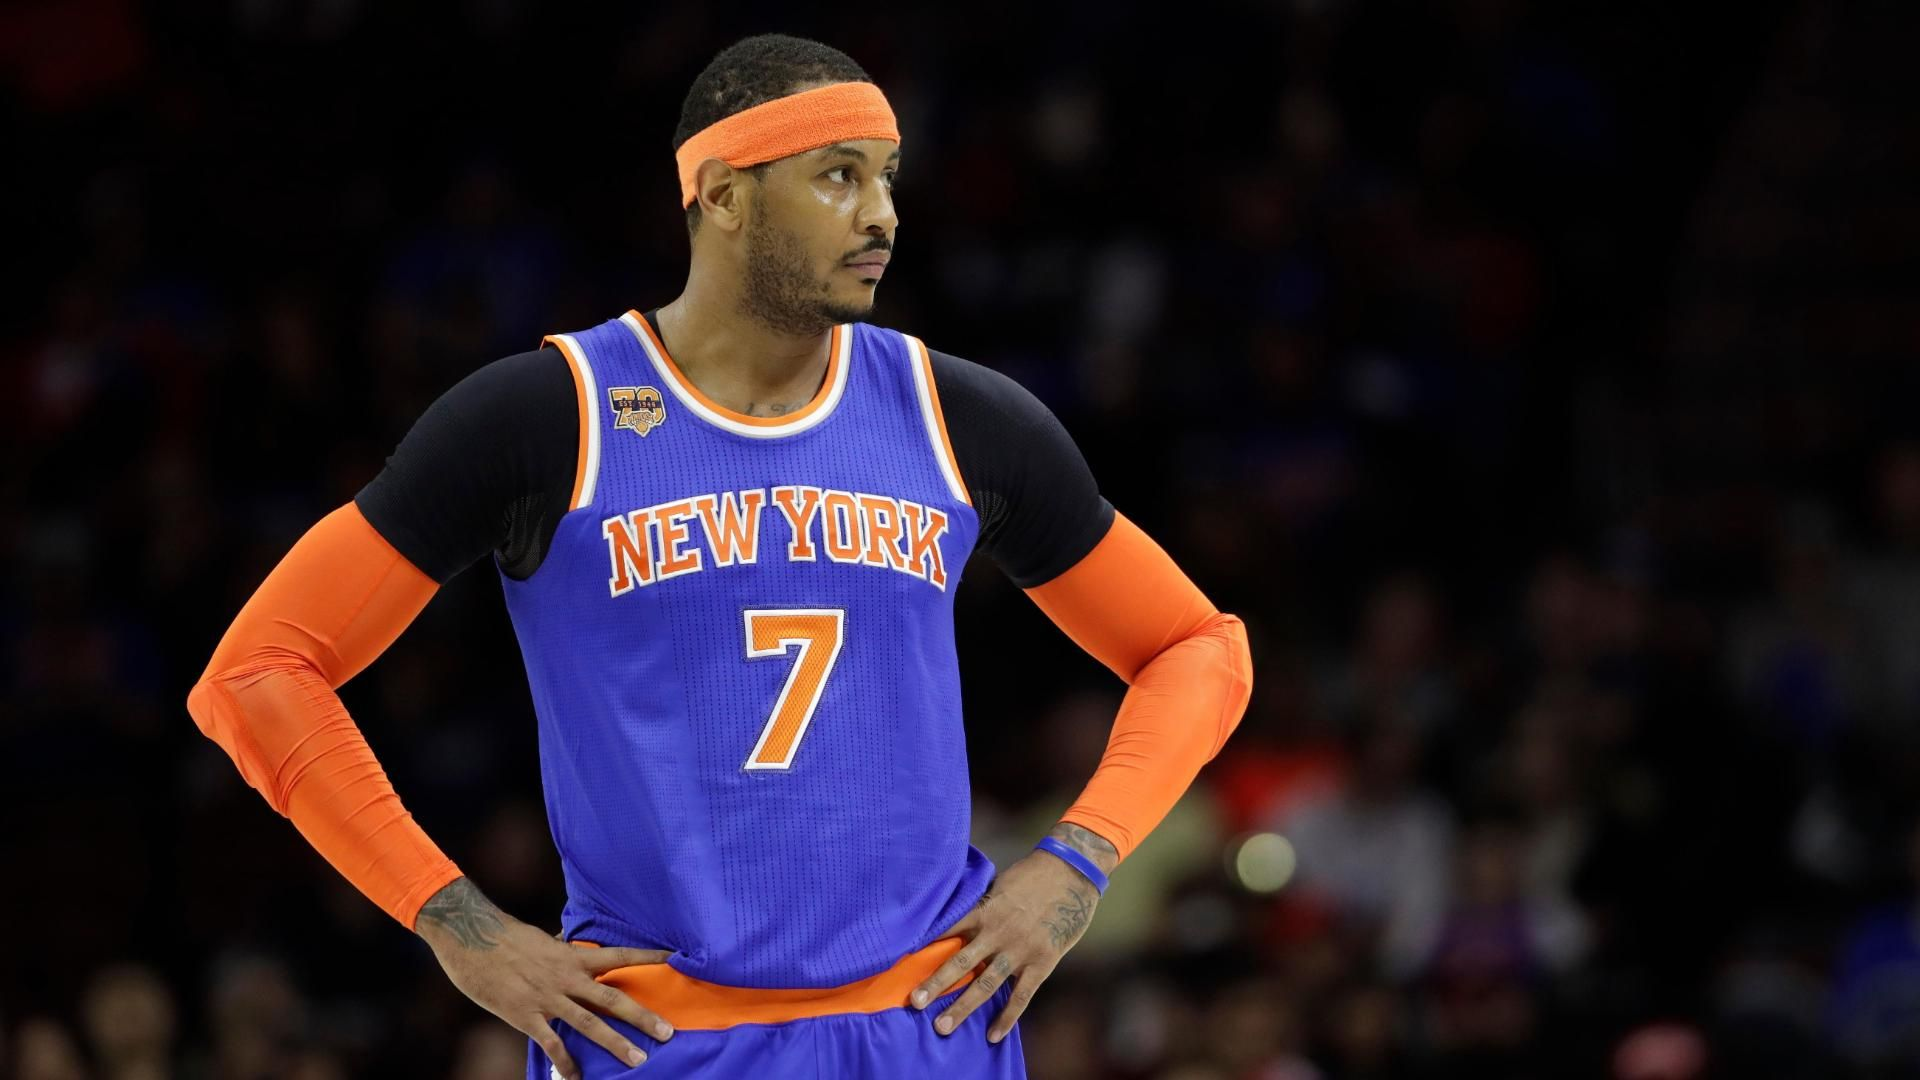 Melo's tumultuous tenure in New York